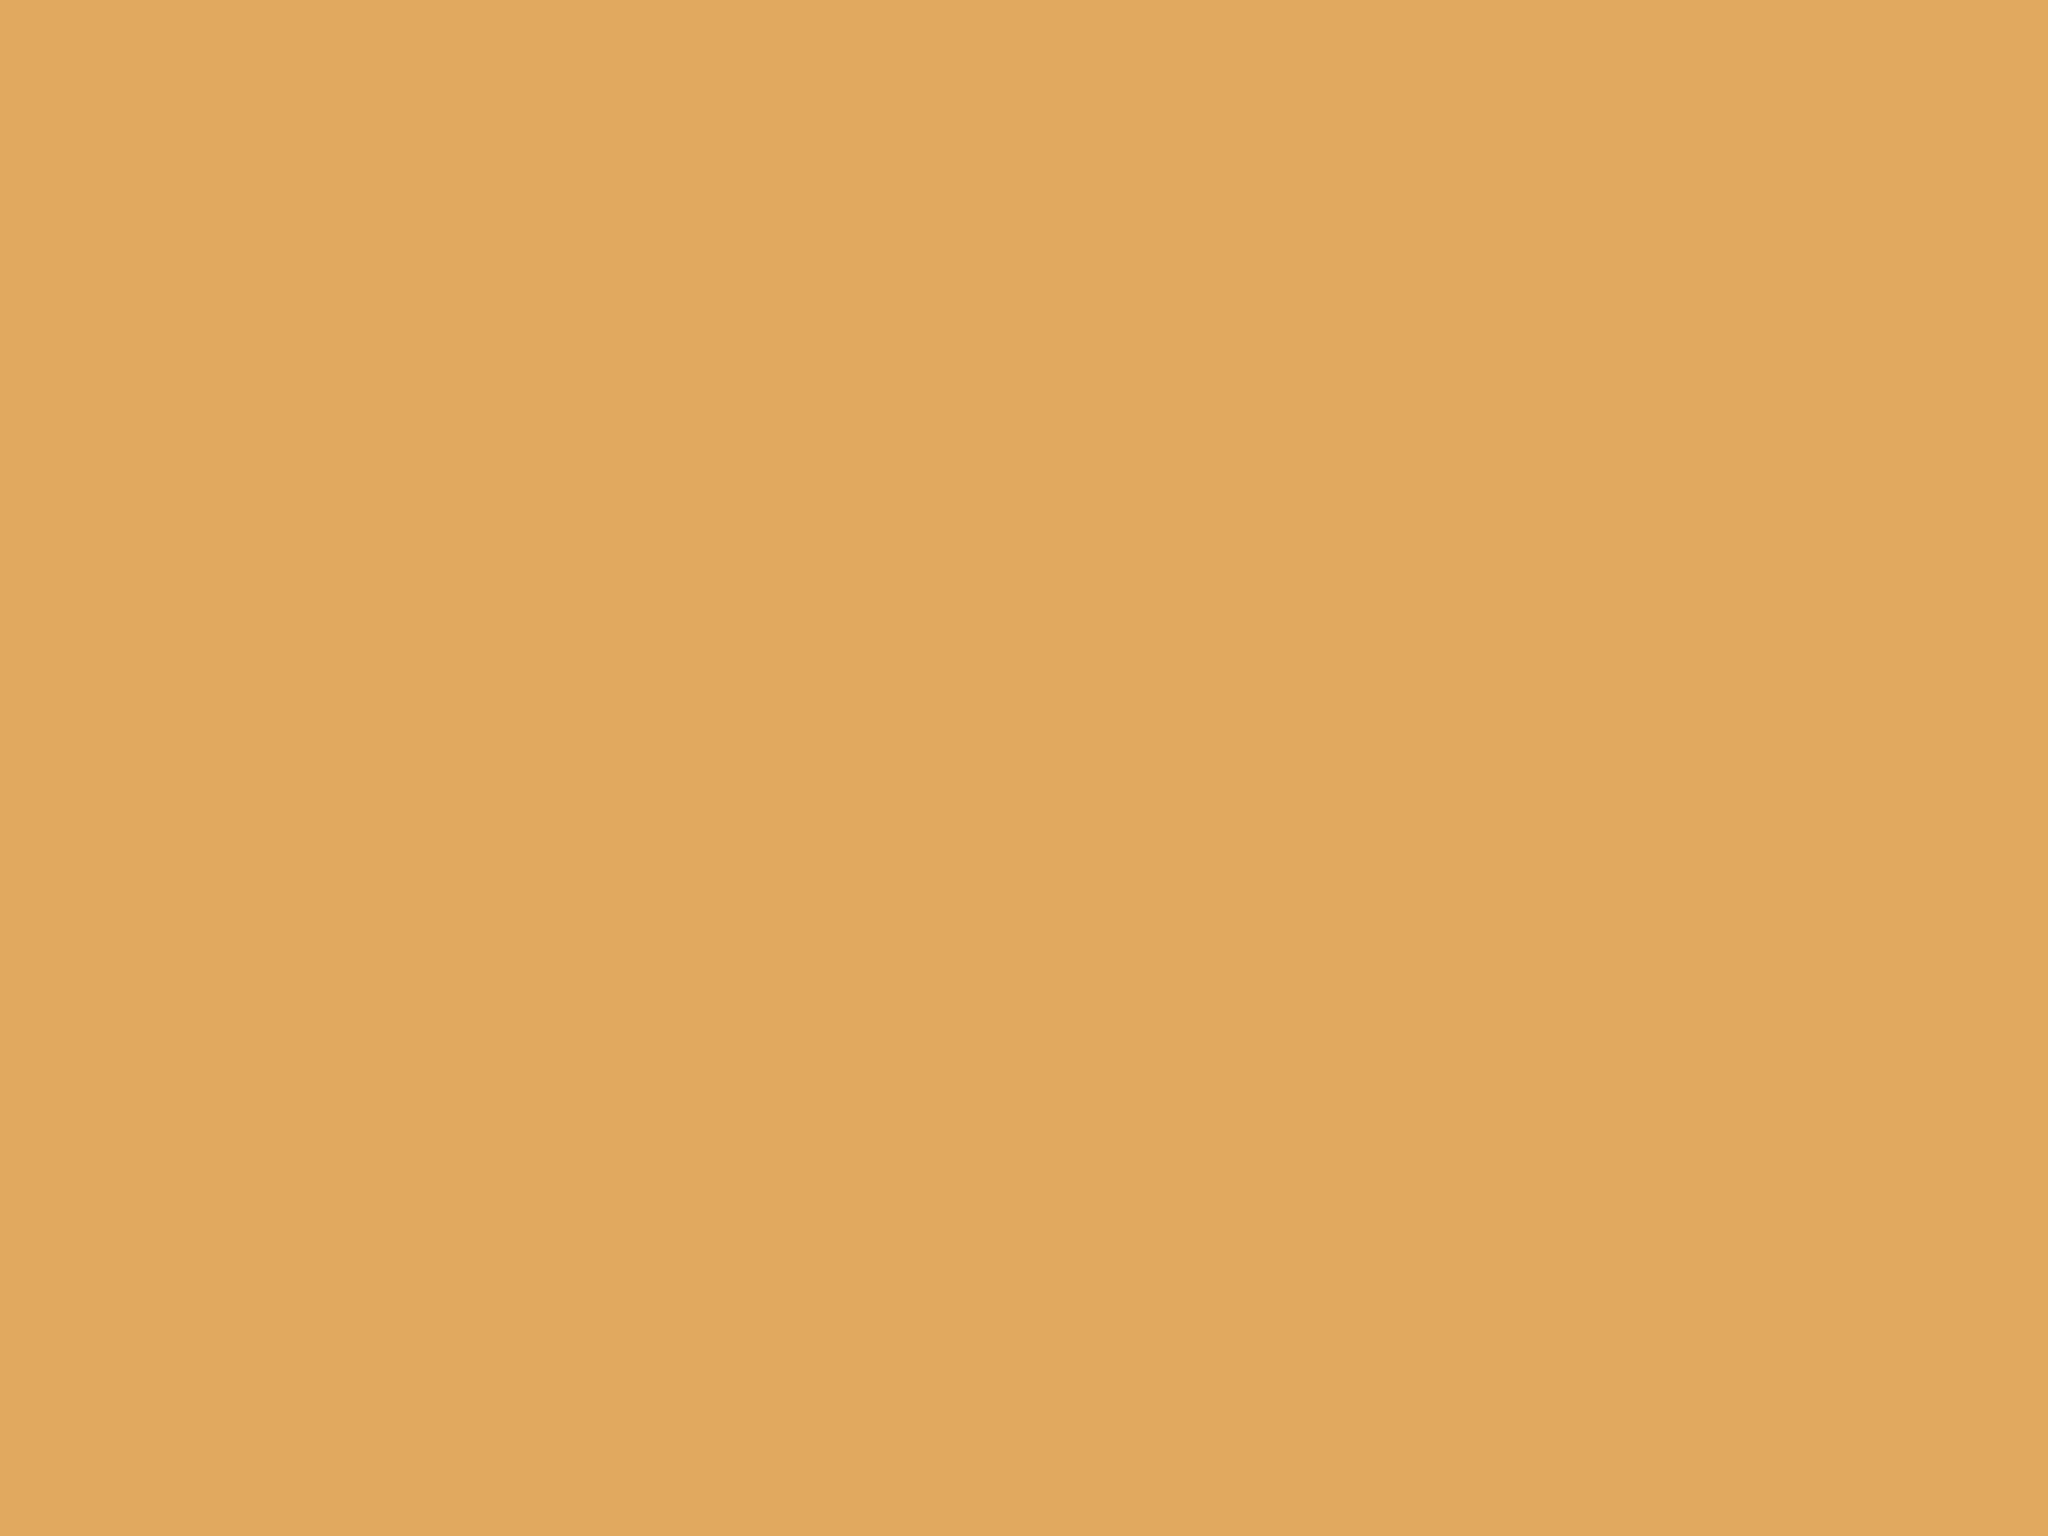 2048x1536 Earth Yellow Solid Color Background